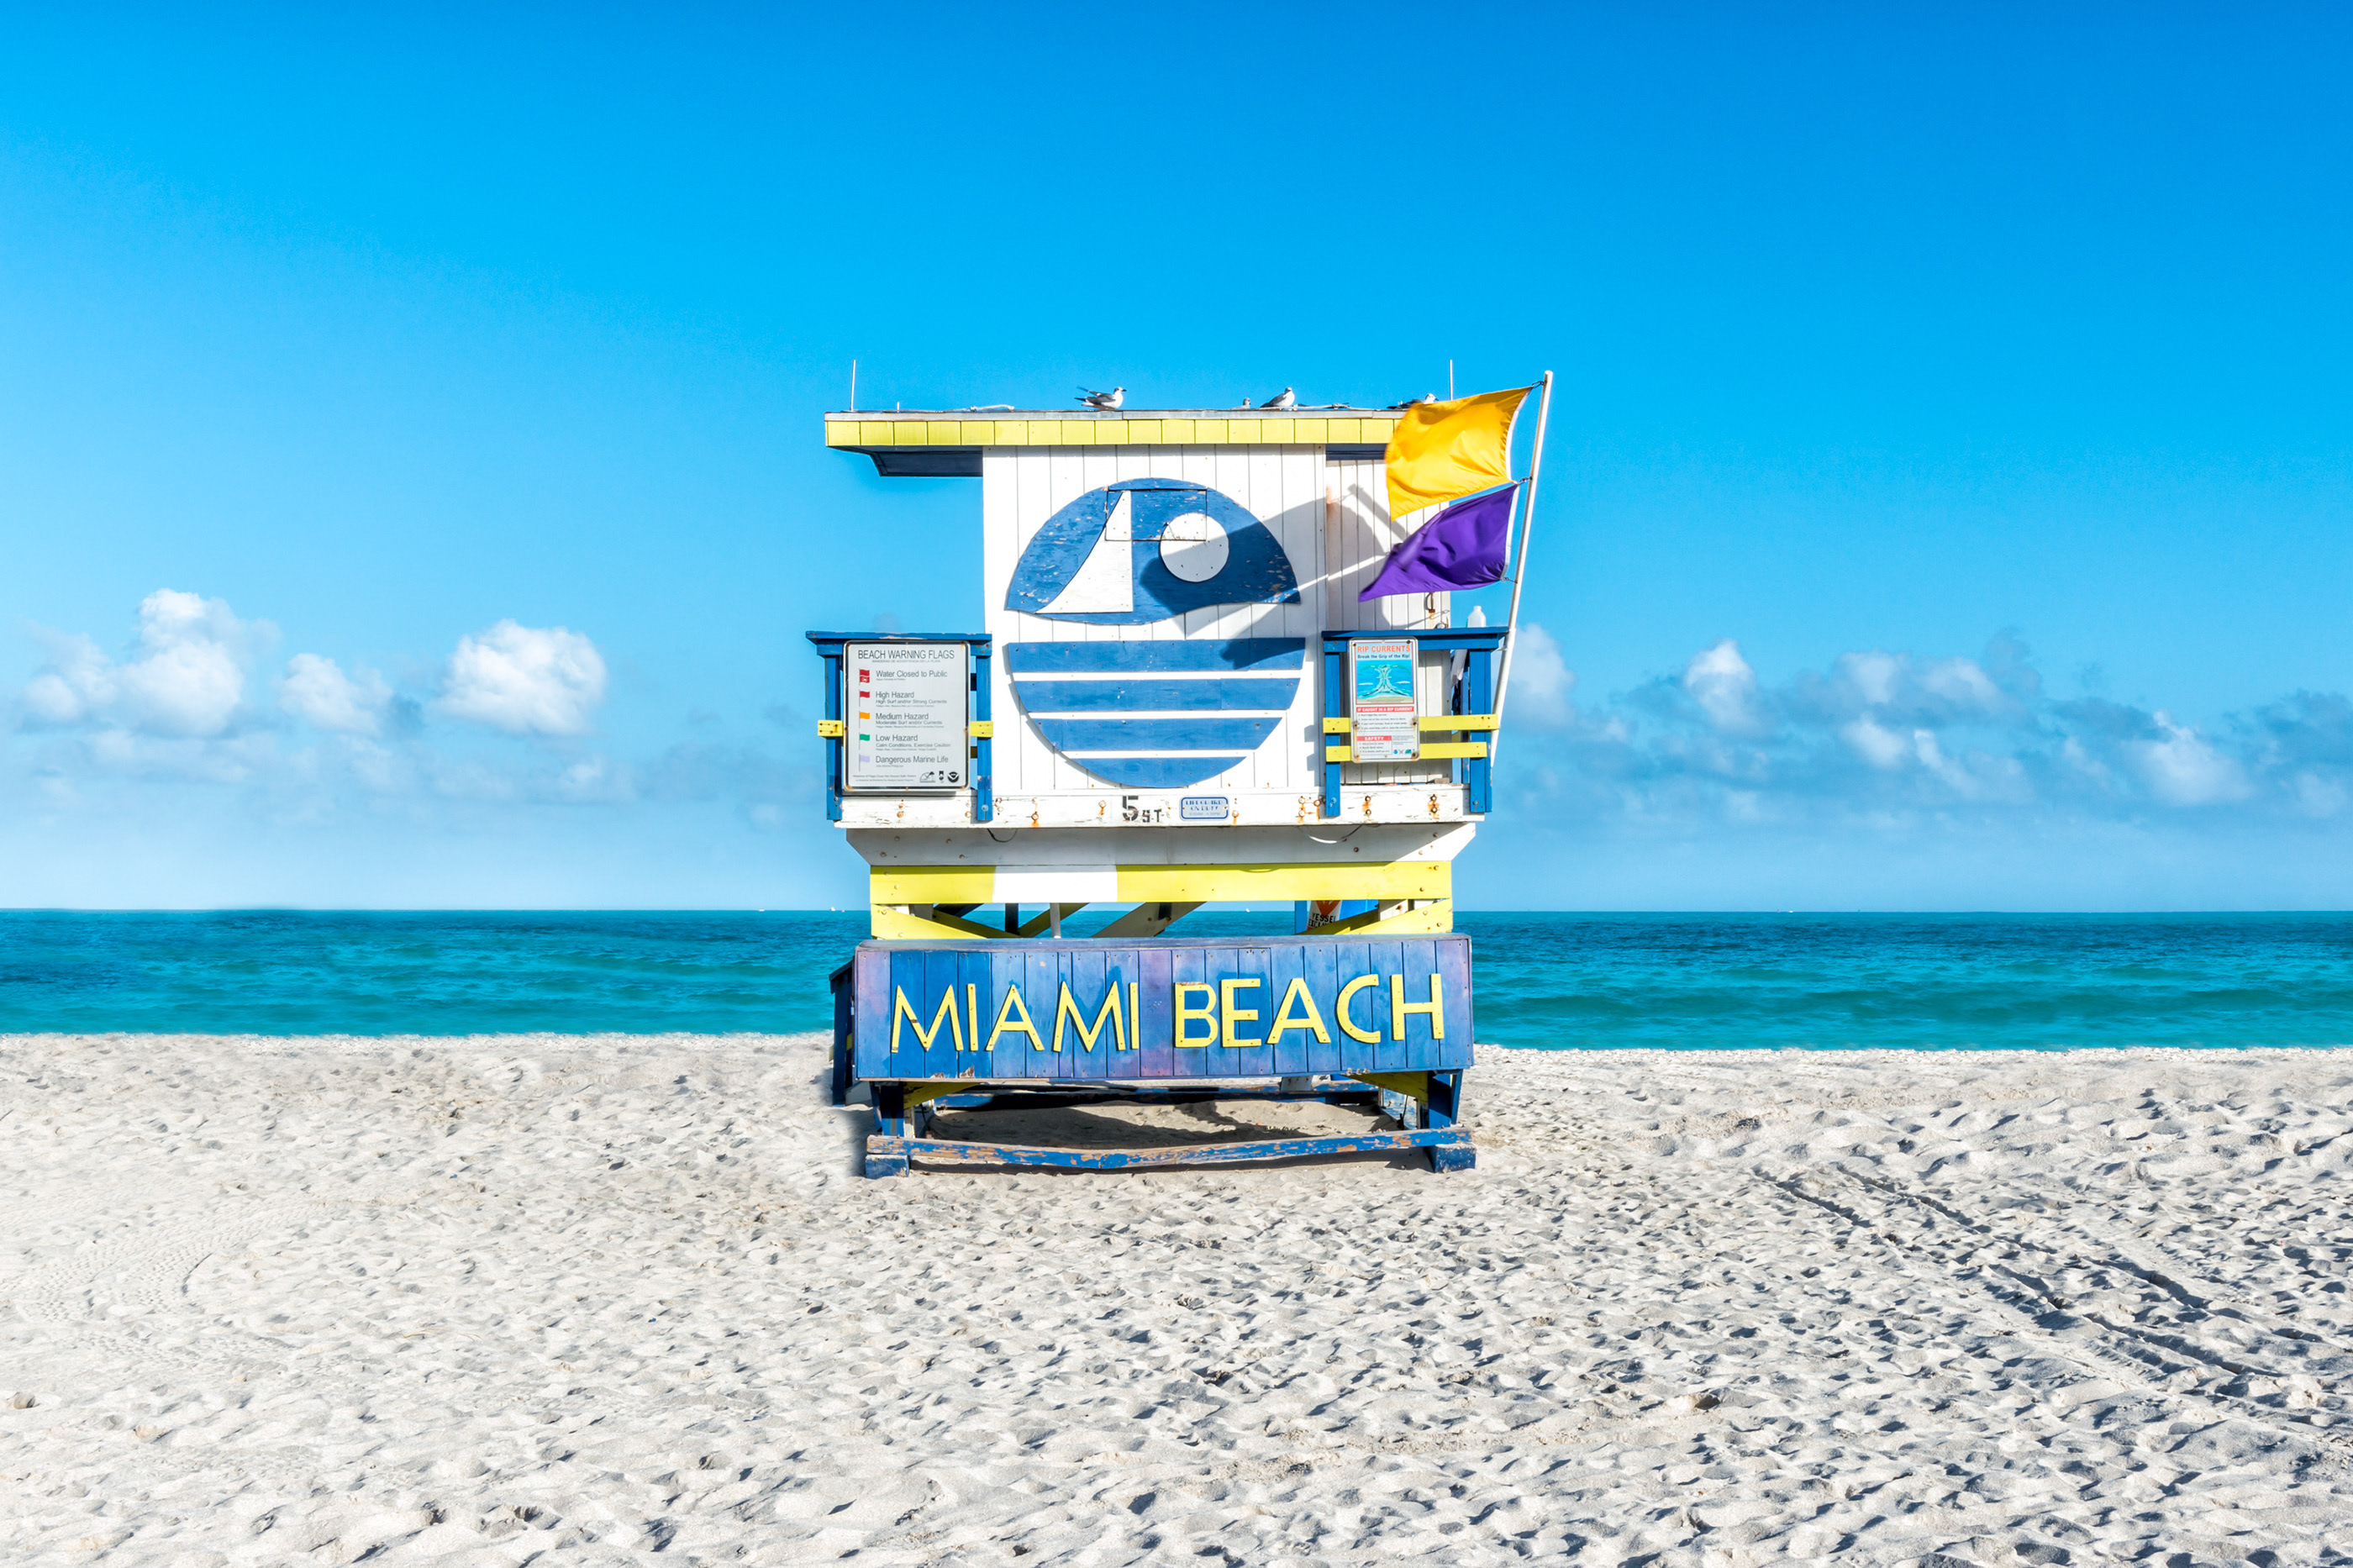 Lifeguard Chairs of South Beach, Miami on Behance